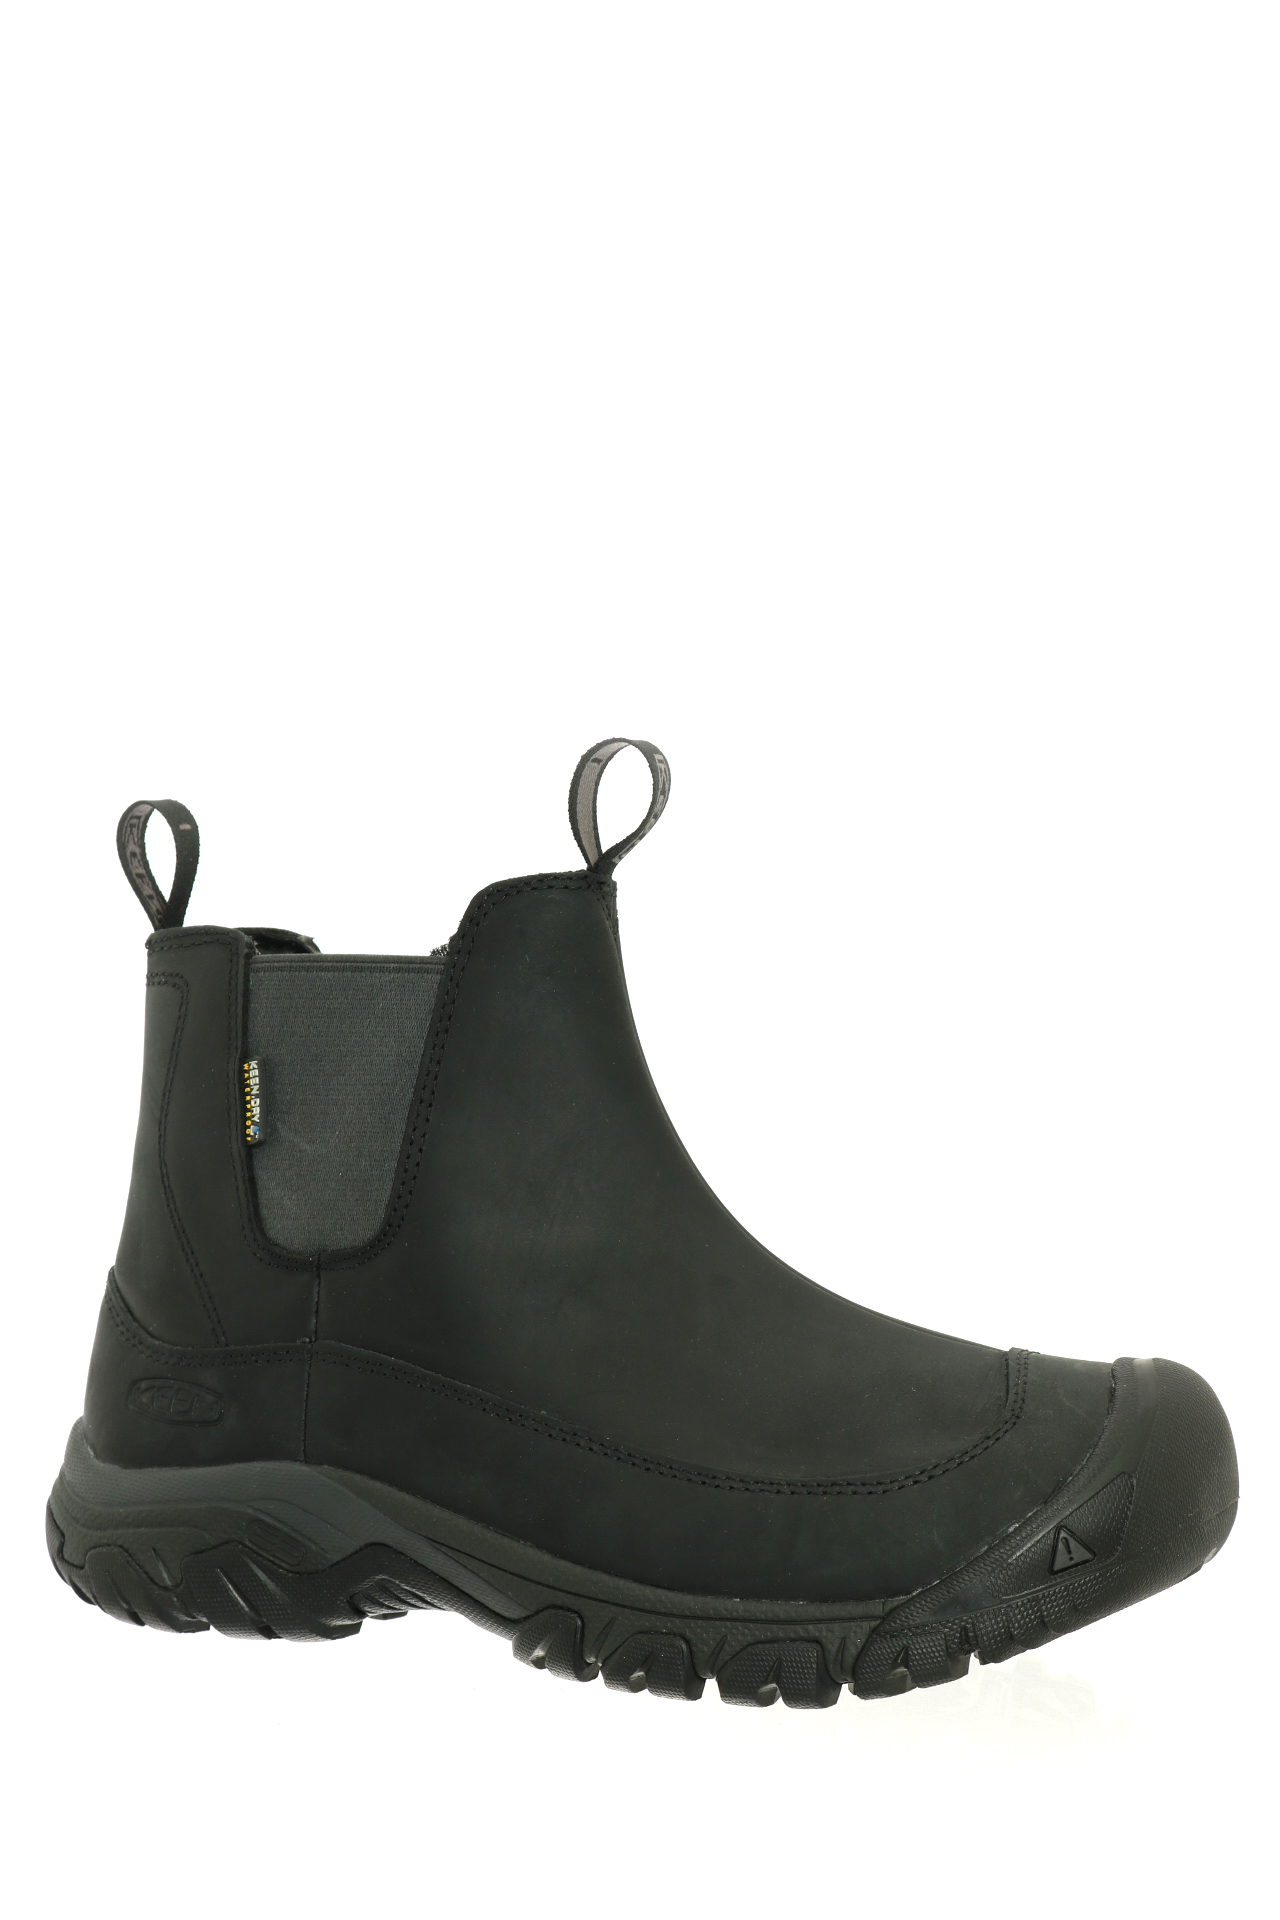 Keen ANCHORAGE BOOT